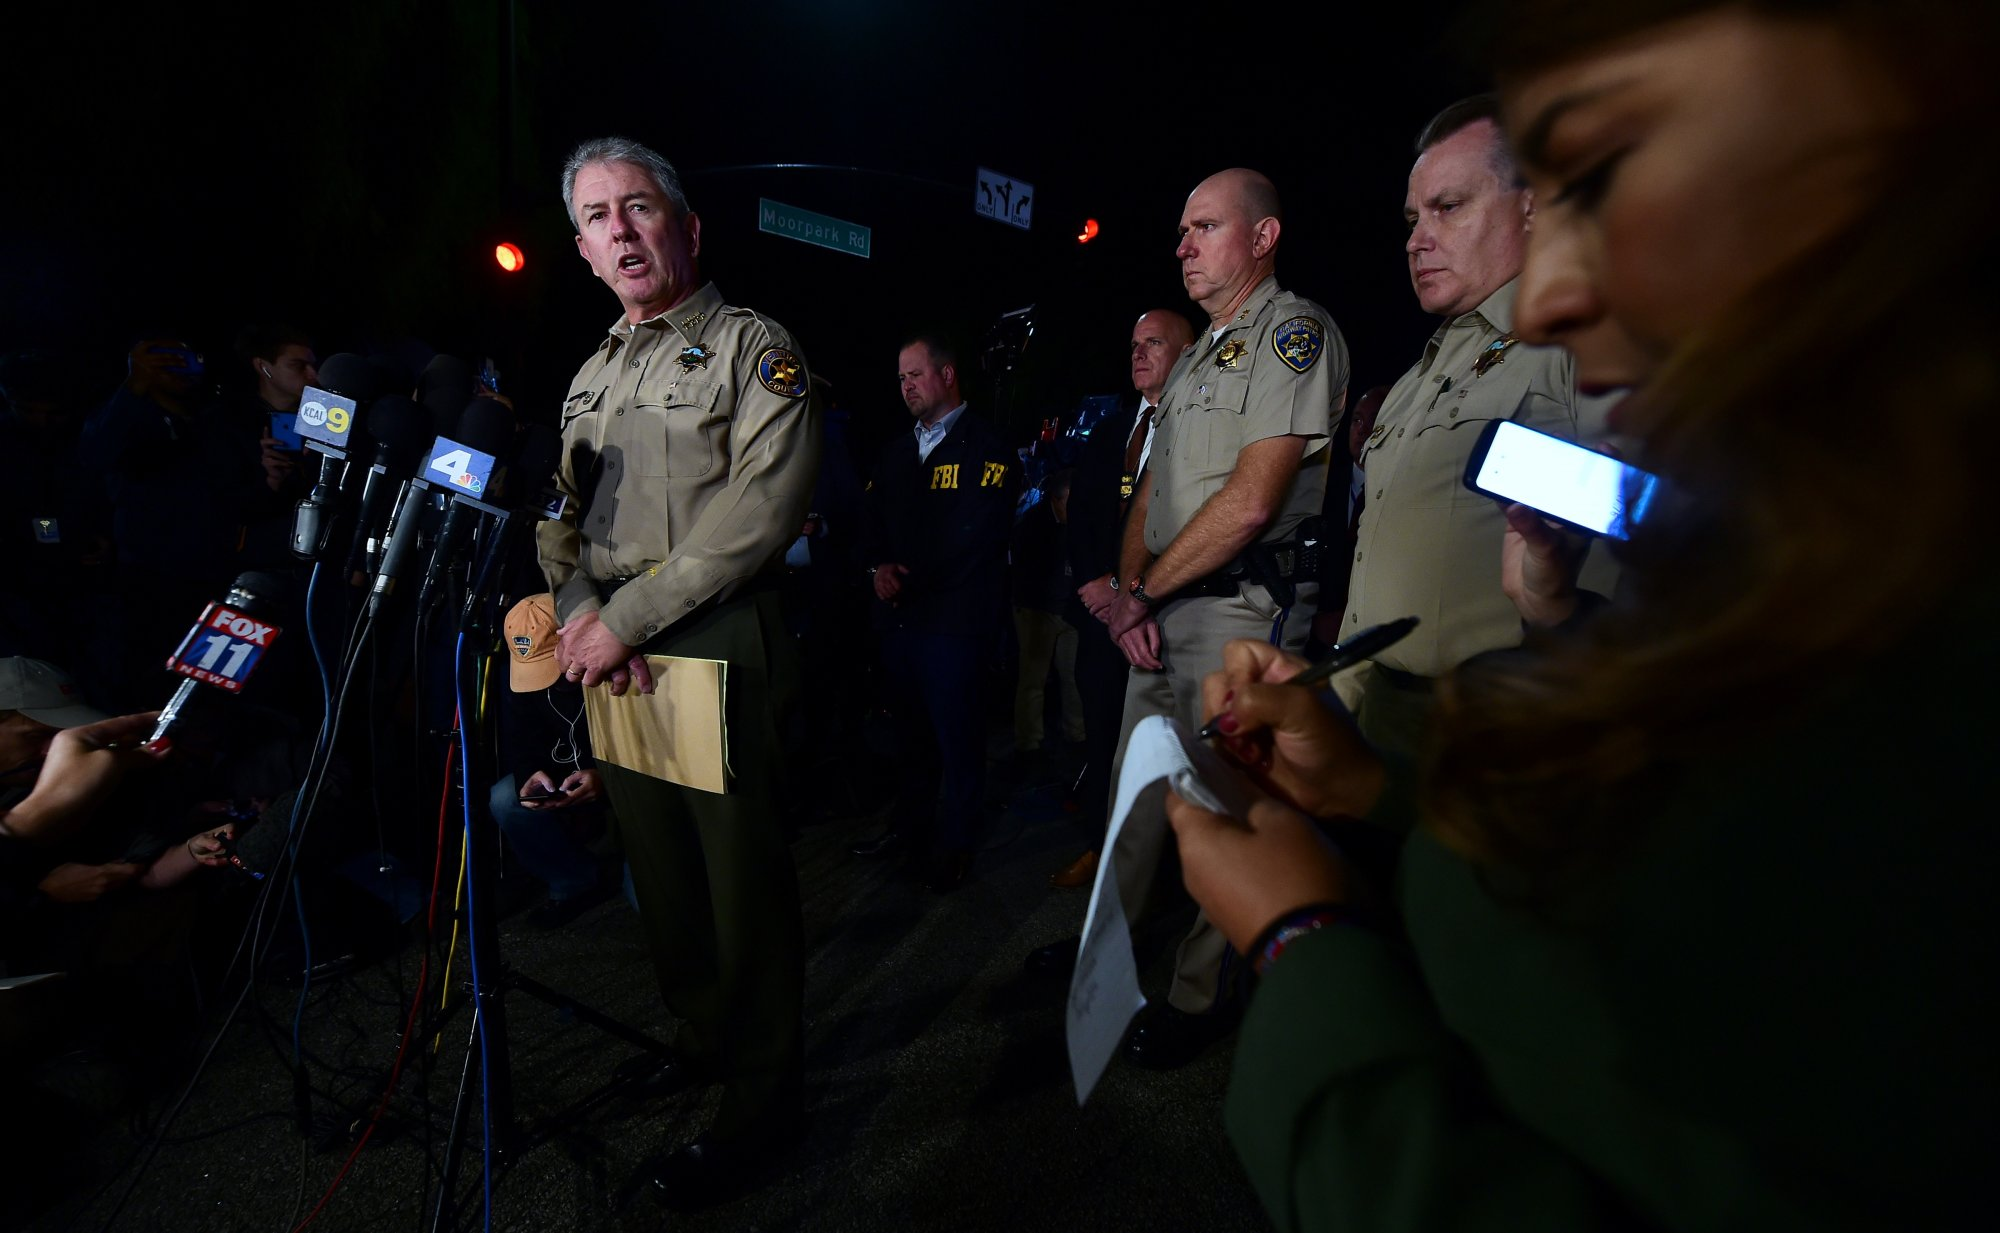 Ventura County Sheriff Geoff Dean briefs reporters at the intersection of US 101 freeway and the Moorpark Rad exit as police vehicles close off the area responding to a shooting at a bar in Thousand Oaks, California on November 8, 2018. - Twelve people, including a police sergeant, were shot dead in a shooting at a nighttclub close to Los Angeles, police said Thursday. All the victims were killed inside the bar in the suburb of Thousand Oaks late on Wednesday, including the officer who had been called to the scene, Sheriff Geoff Dean told reporters. The gunman was also dead at the scene, Dean added. The bar was hosting a college country music night. (Photo by Frederic J. BROWN / AFP)        (Photo credit should read FREDERIC J. BROWN/AFP/Getty Images)